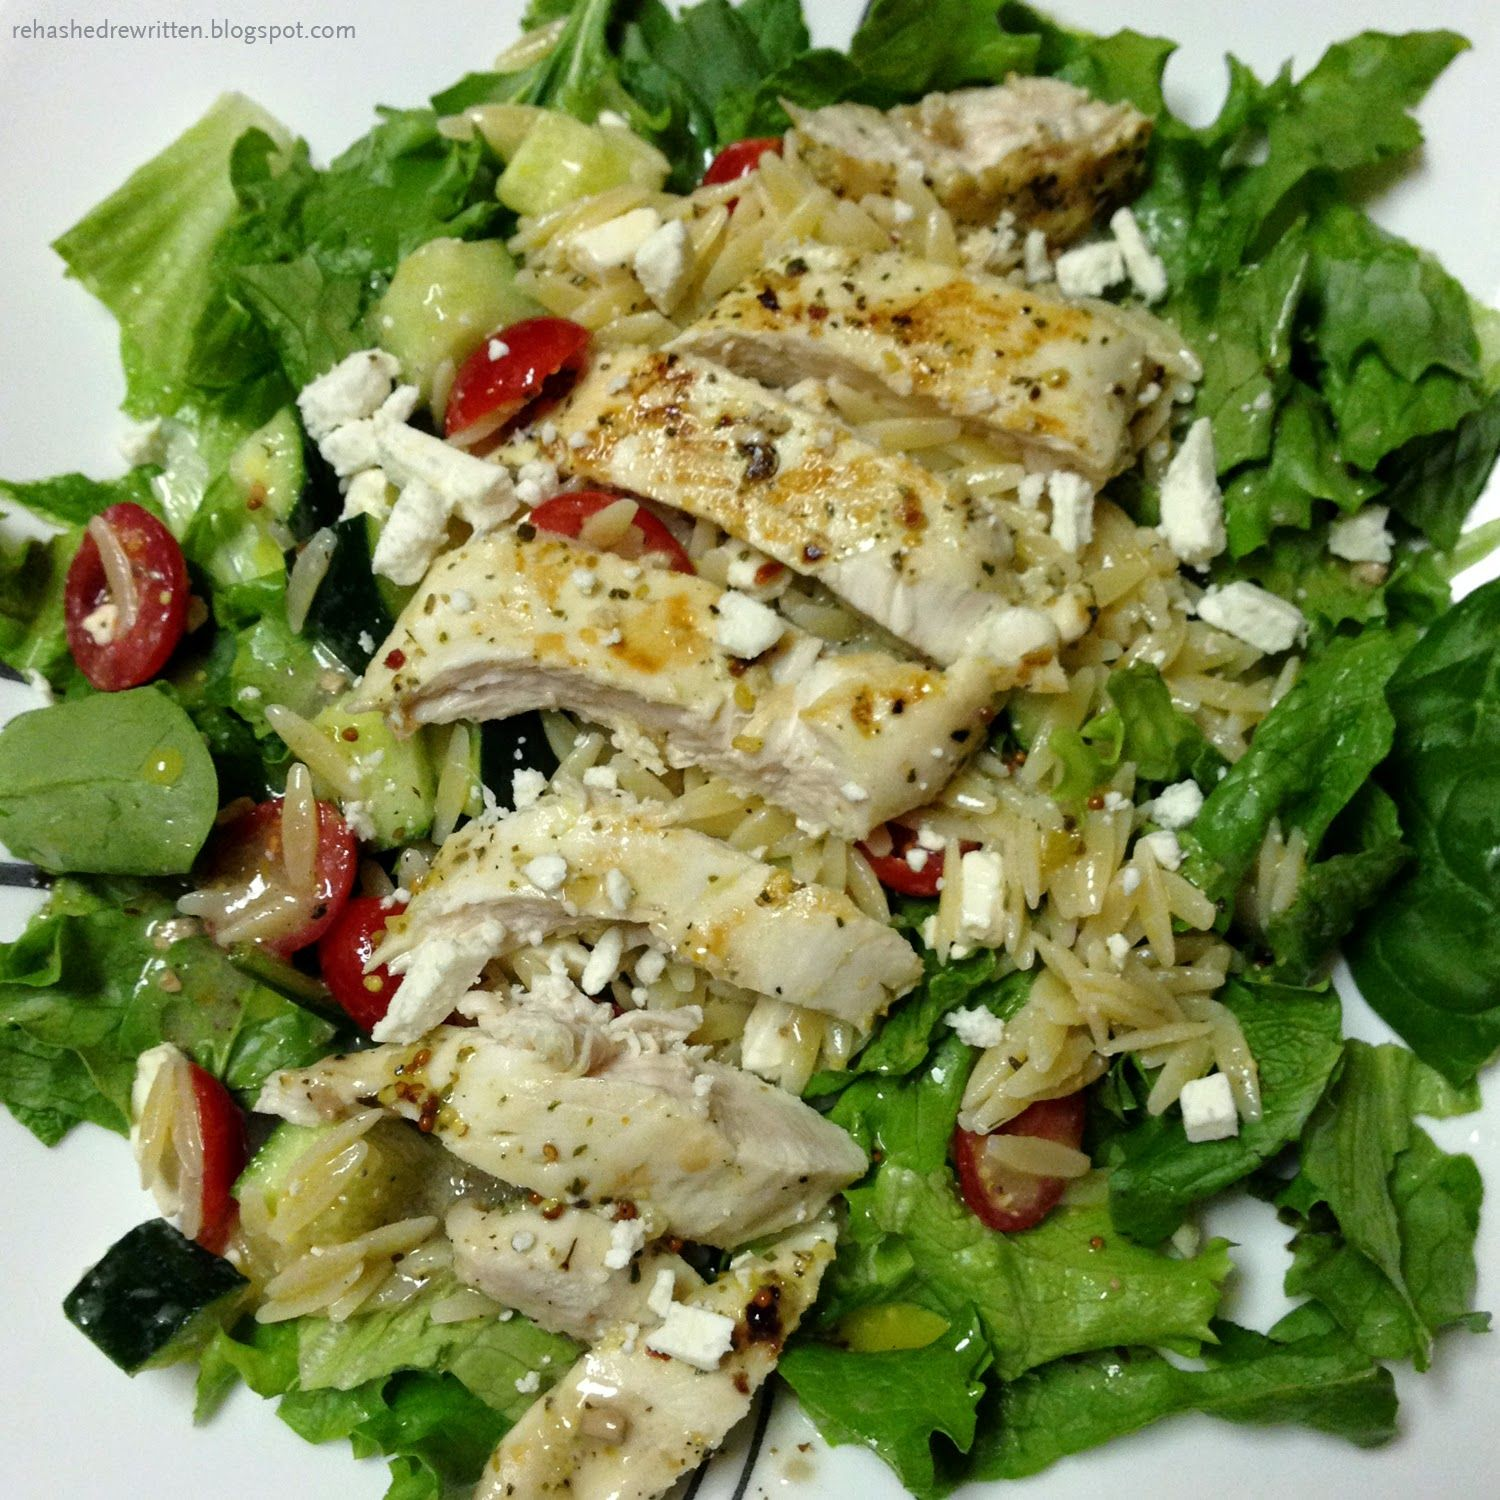 Zoes Kitchen Menu Nutrition: Orzo Salad With Lemon Dressing